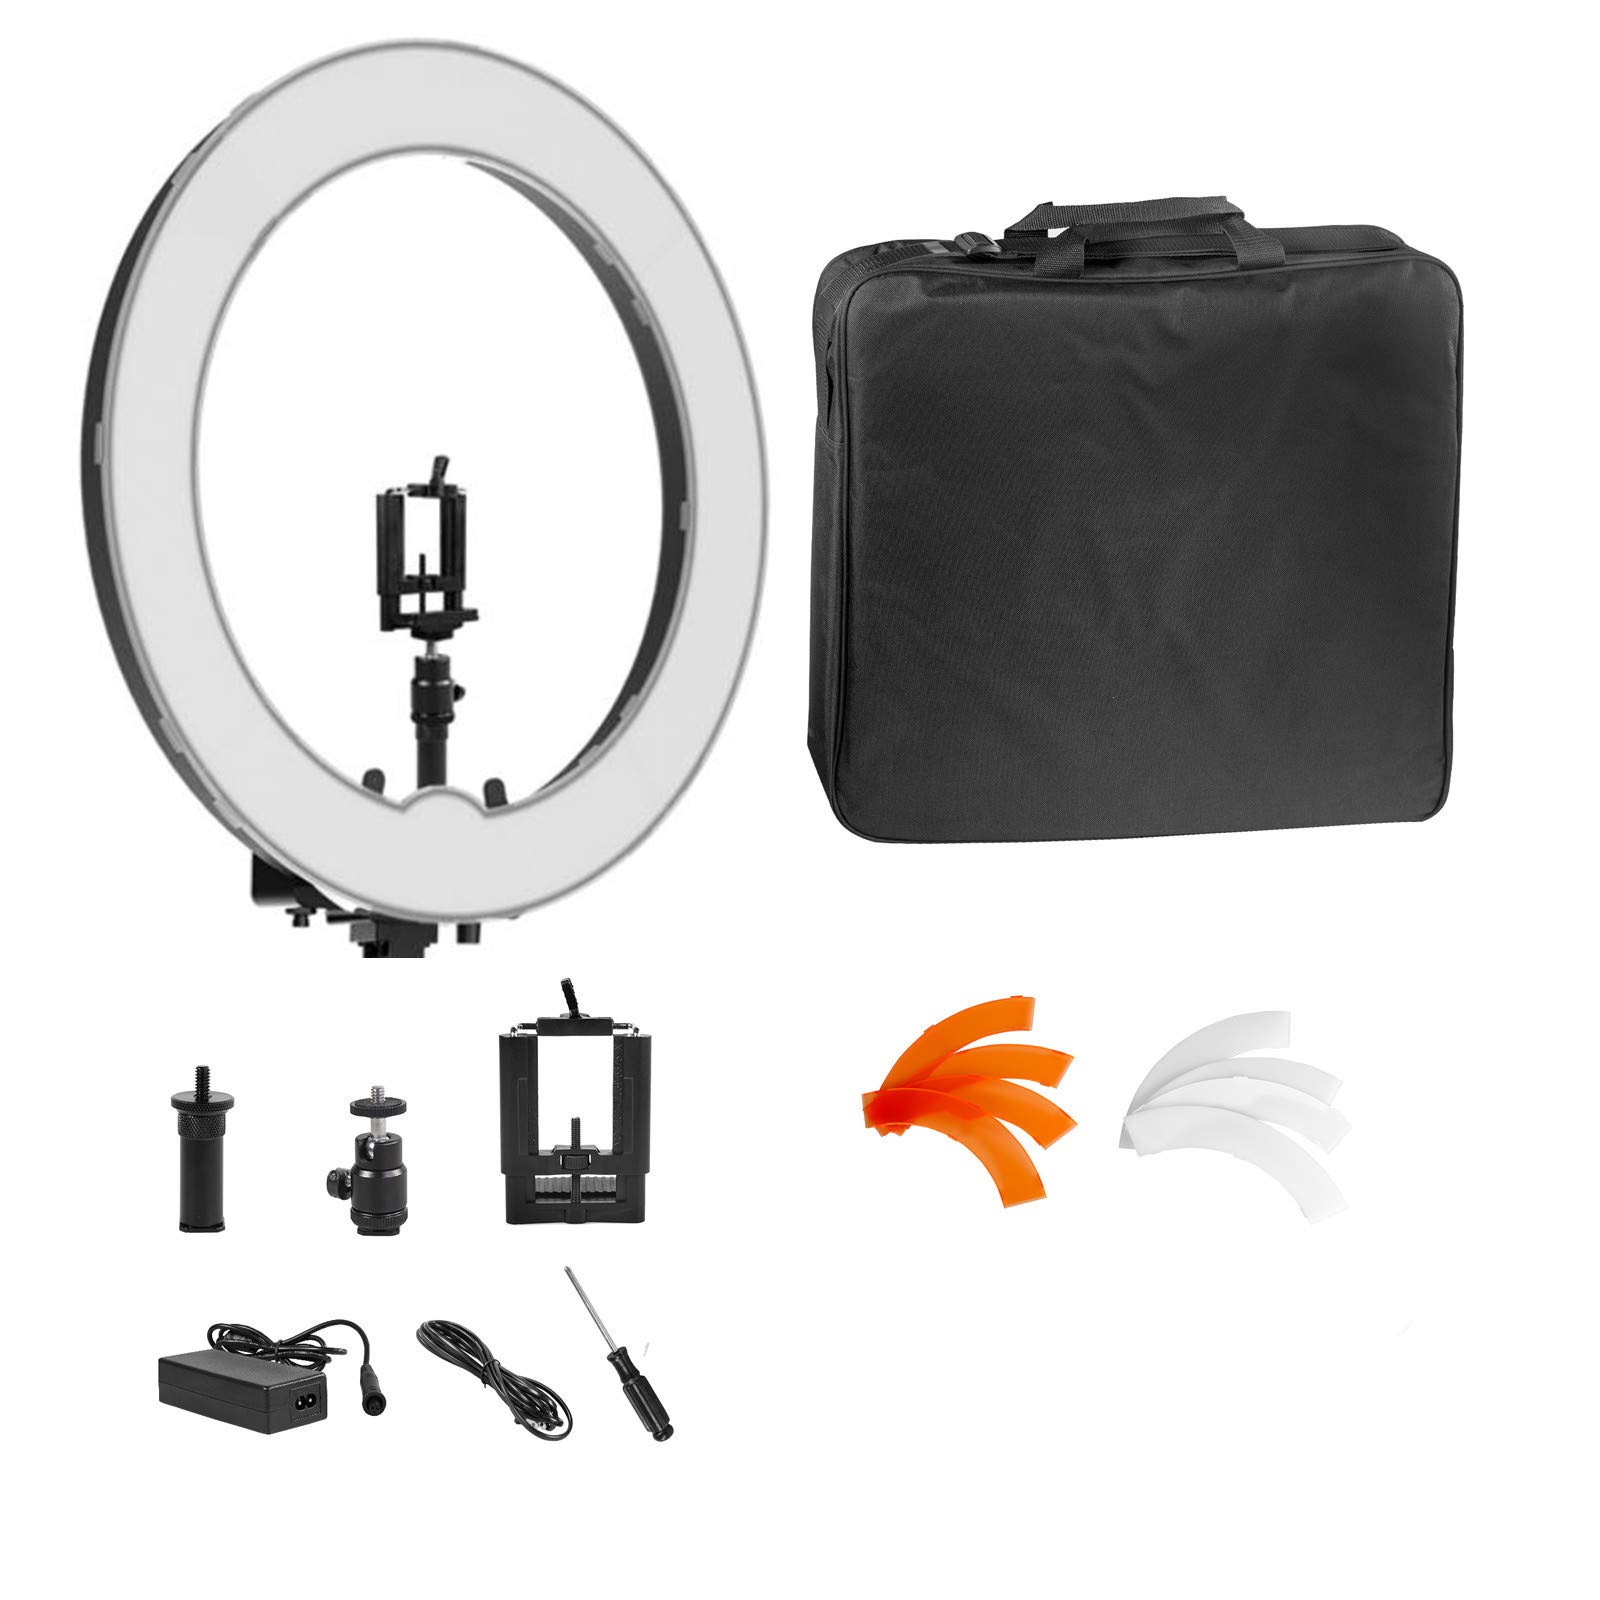 Ring Light Kit:18 inch Outer 55W 5500K Dimmable LED Ring Light for Camera,Smartphone,YouTube,Self-Portrait Shooting(No Light Stand)